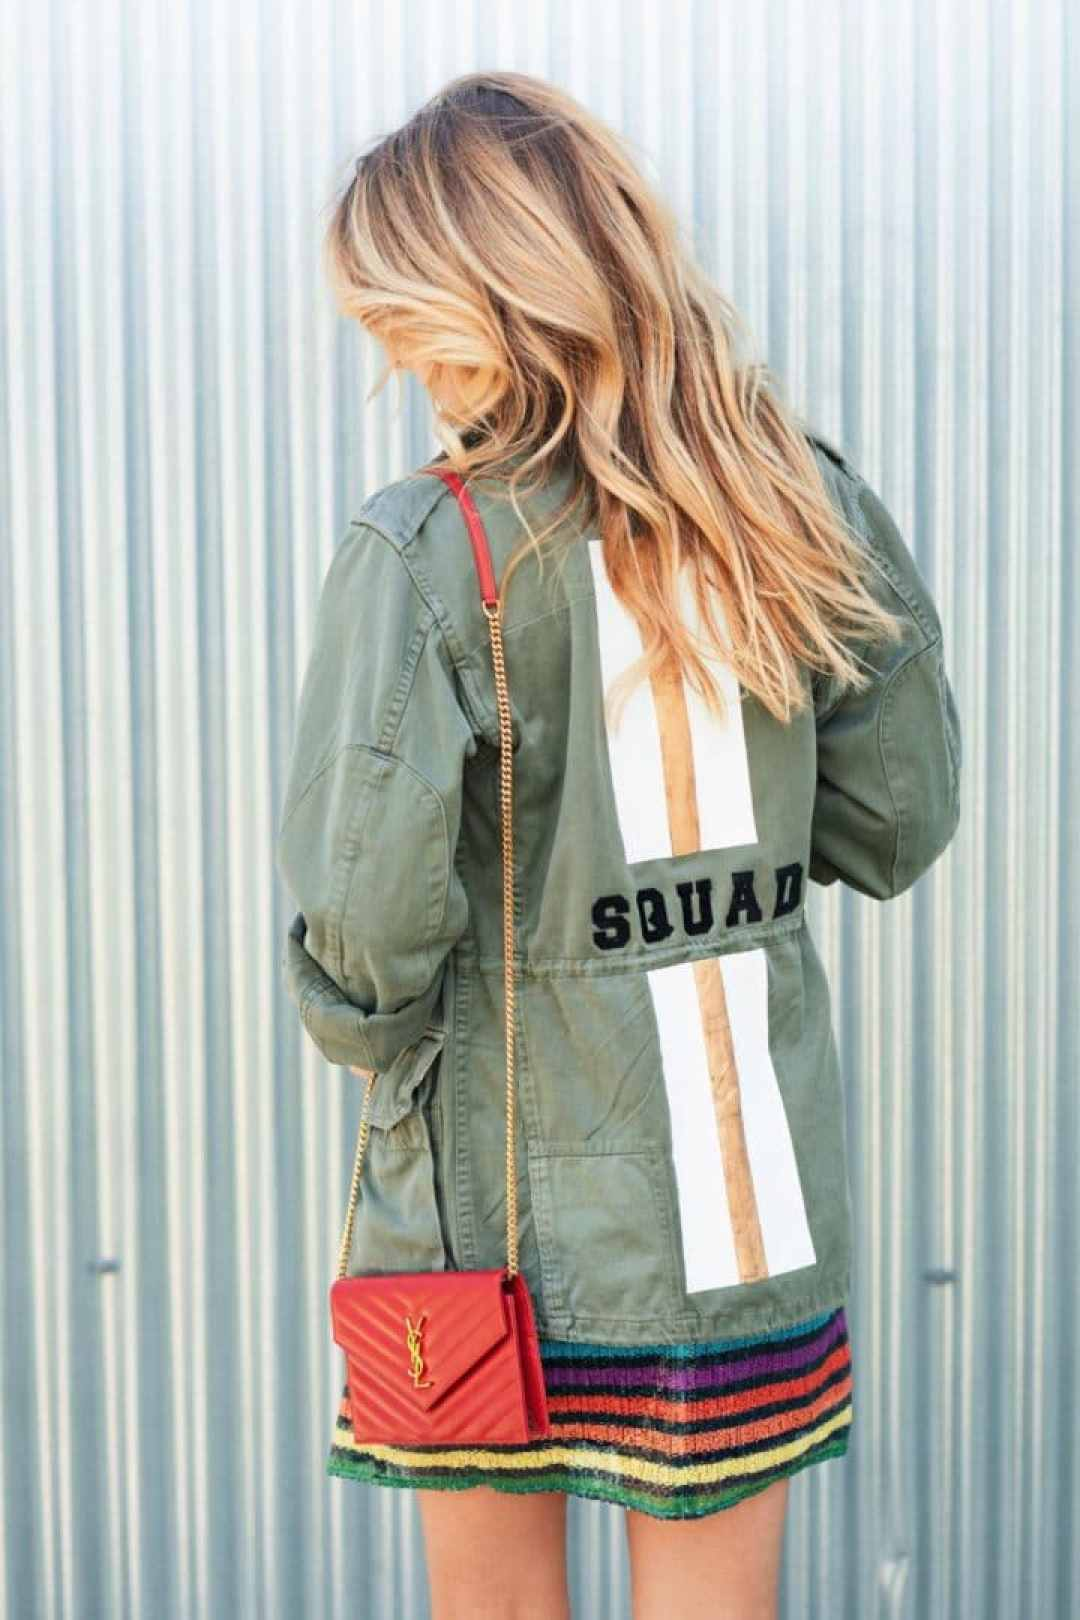 Squad Army Jacket and YSL Red Leather Bag